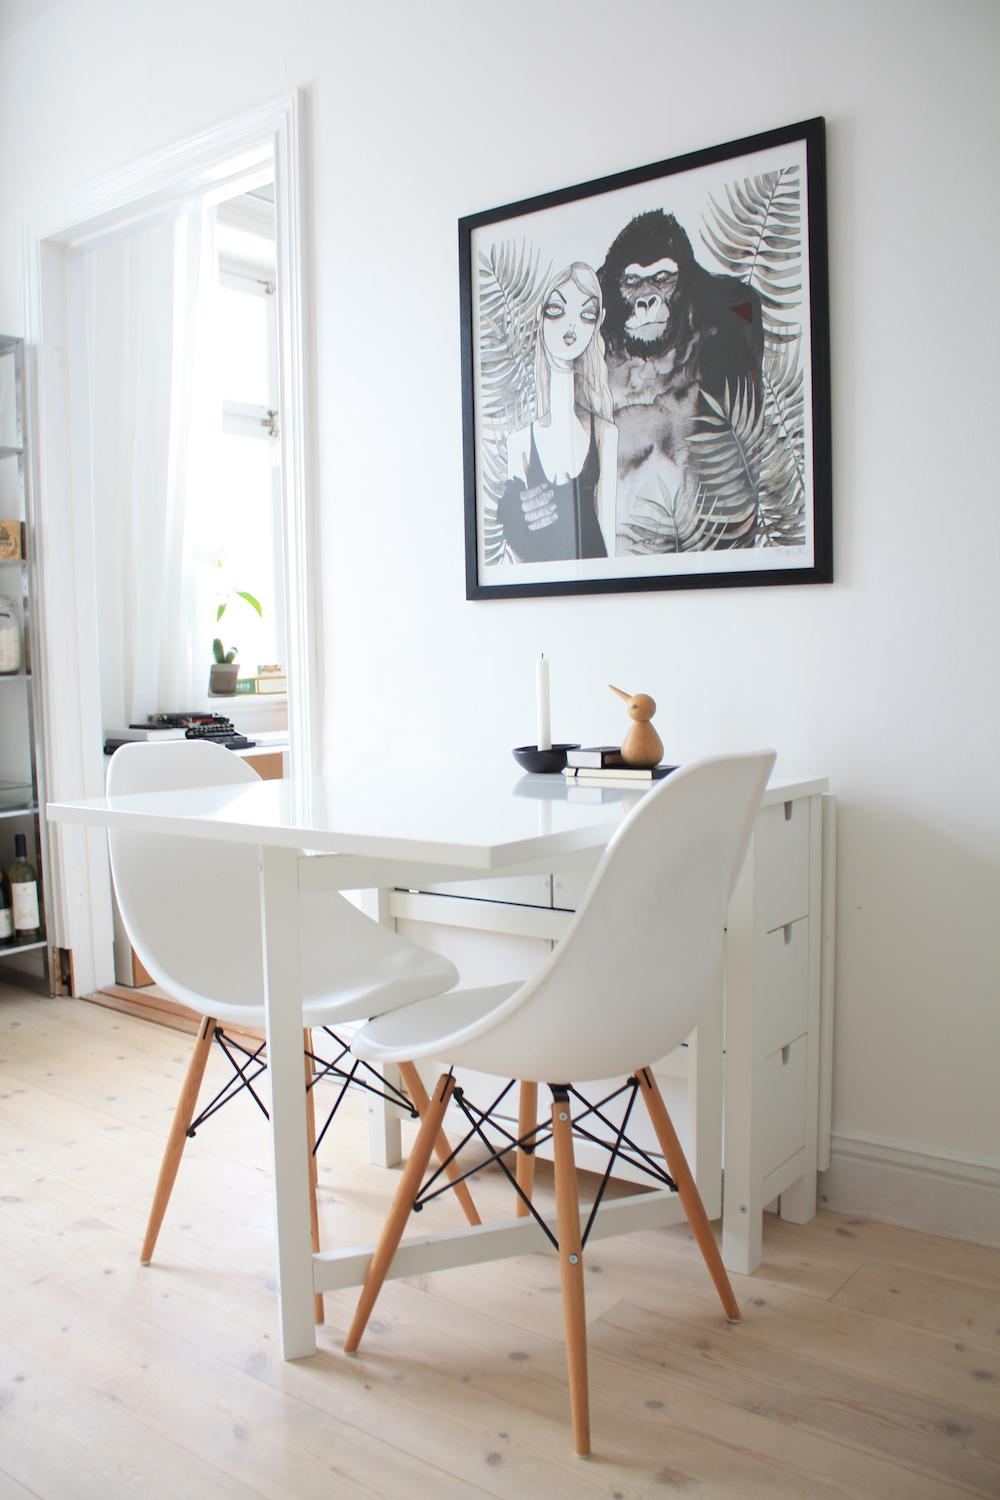 Brilliant Uses For Norden Gateleg Table That Will Surprise You